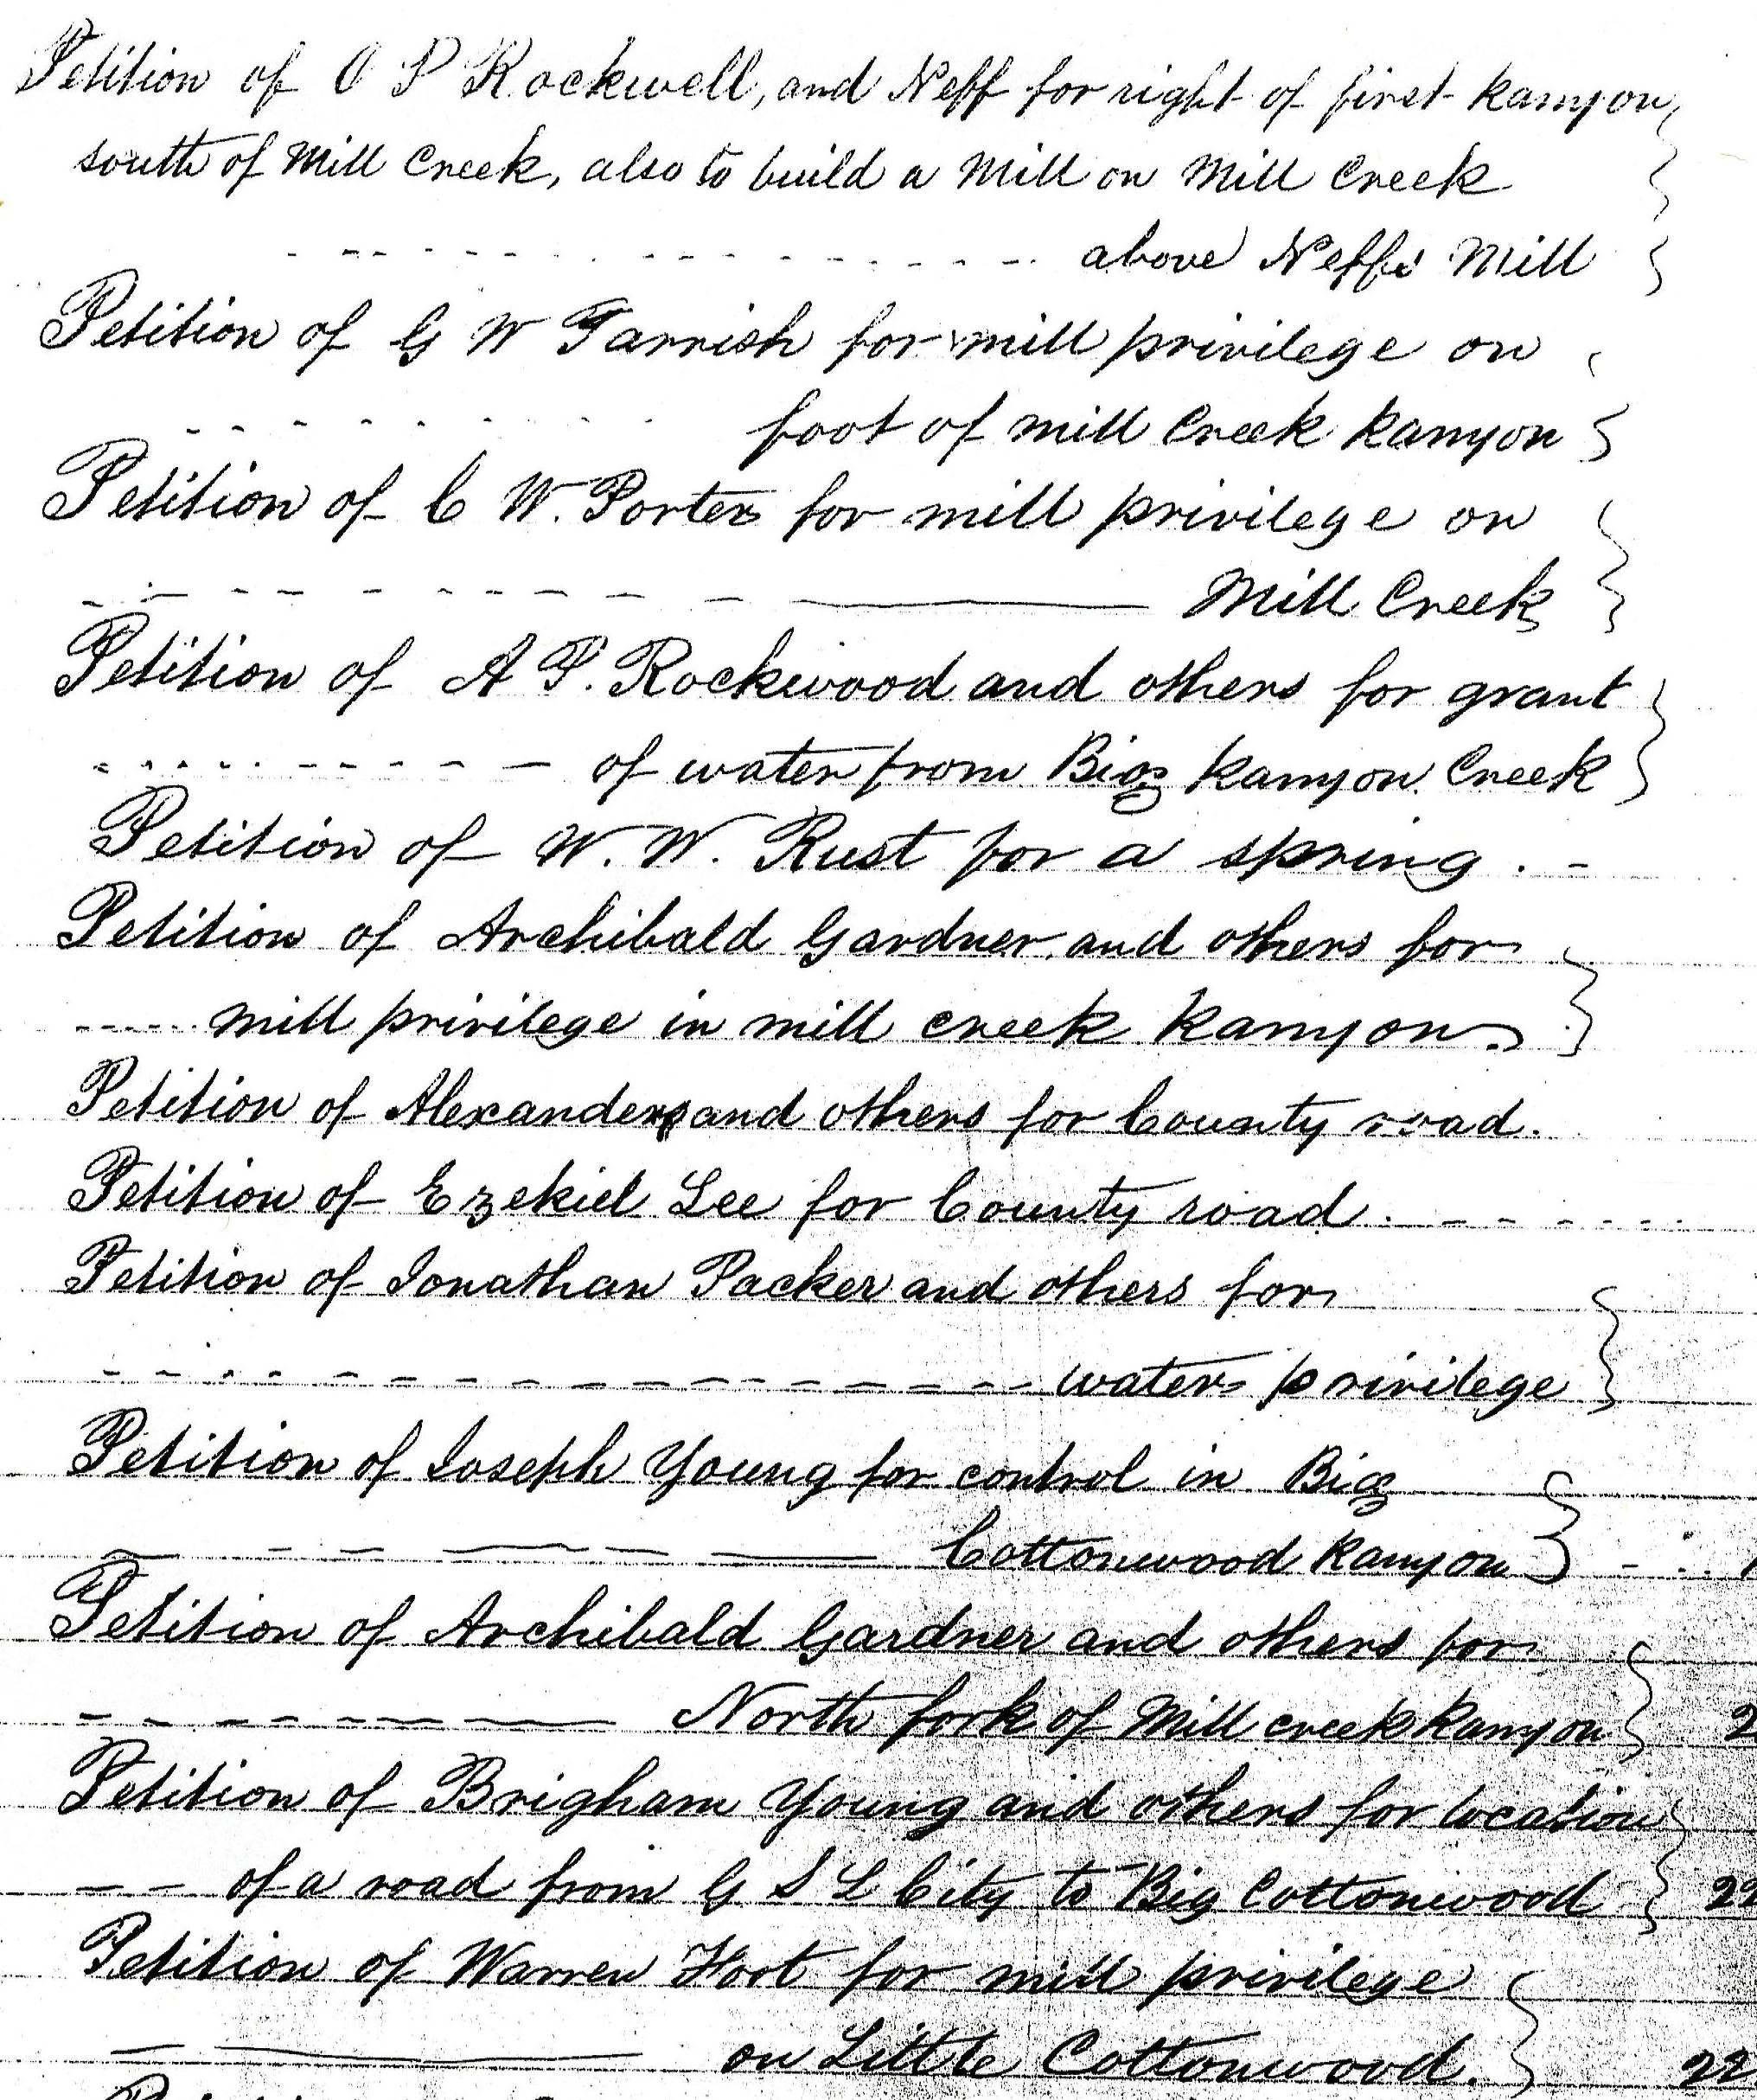 Salt Lake County Commission Minutes Index To Book A 1852 1857 Pretty Nice Handwriting